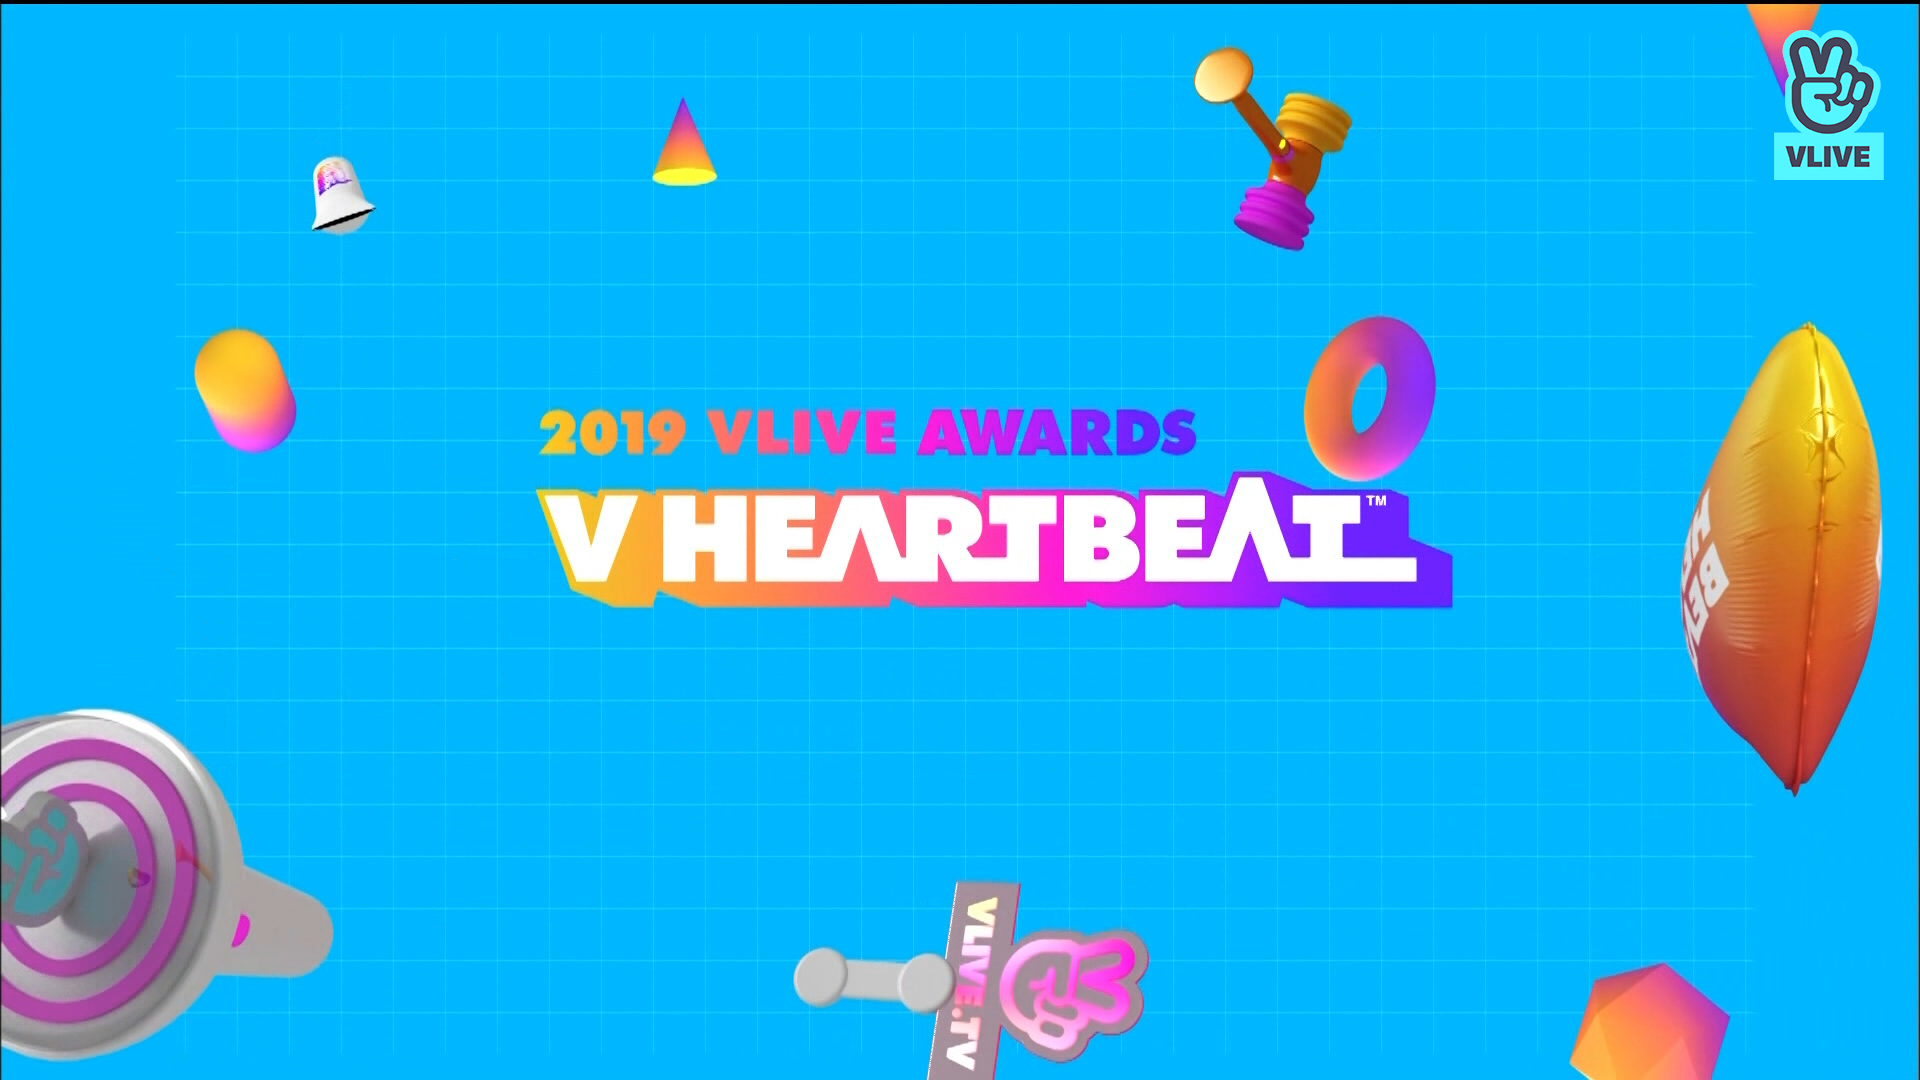 [Full] 2019 VLIVE AWARDS V HEARTBEAT PART1